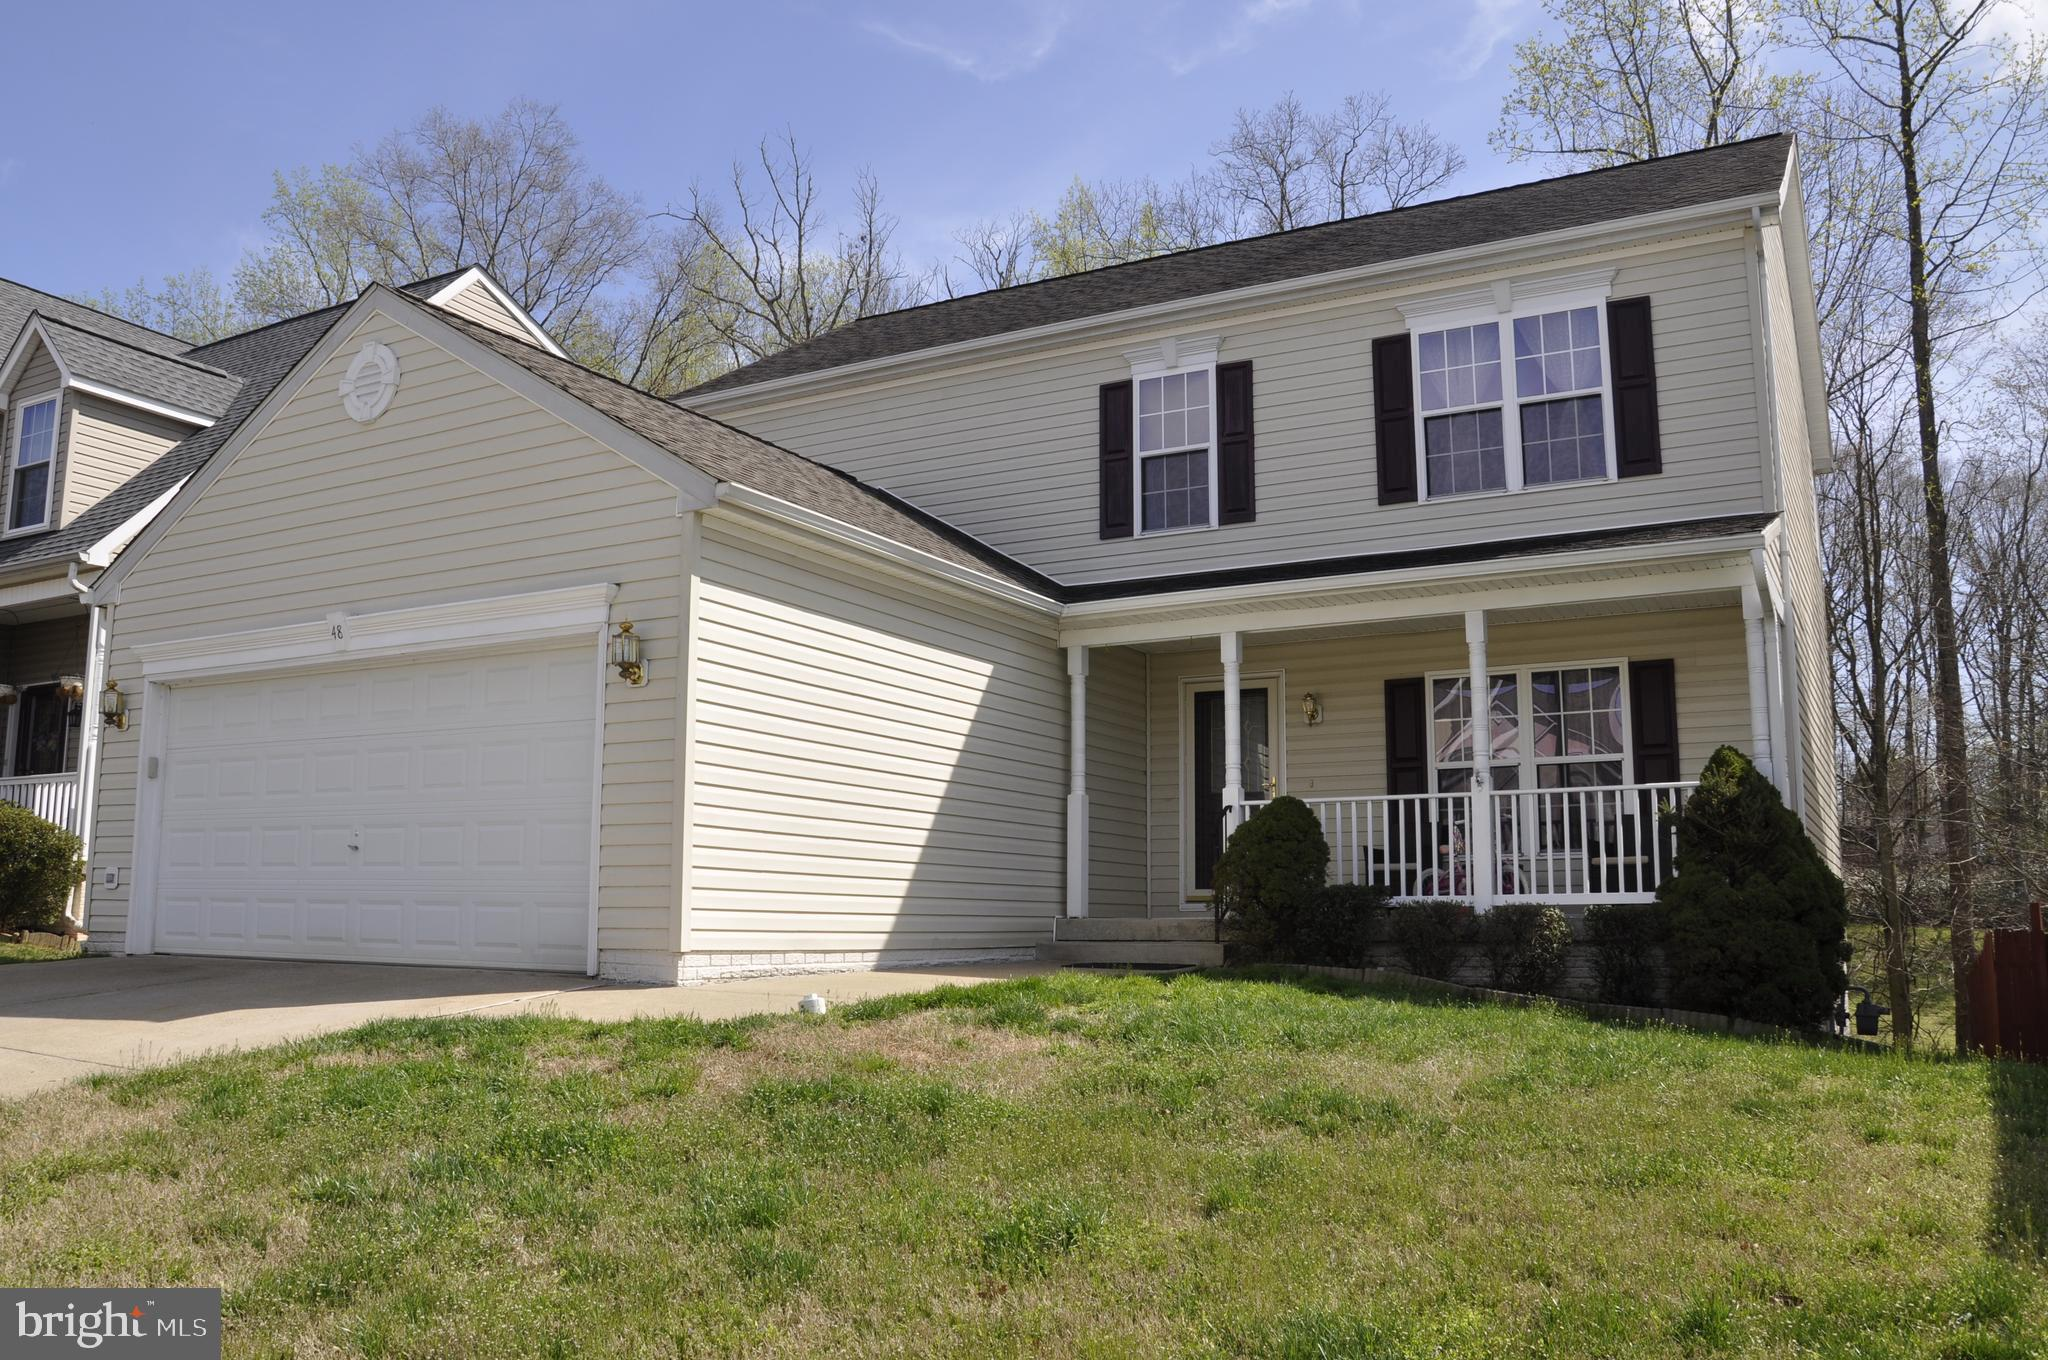 Stunning colonial single family home with 4 bedrooms, 2 full bath, and 1 half bath. Upgraded kitchen